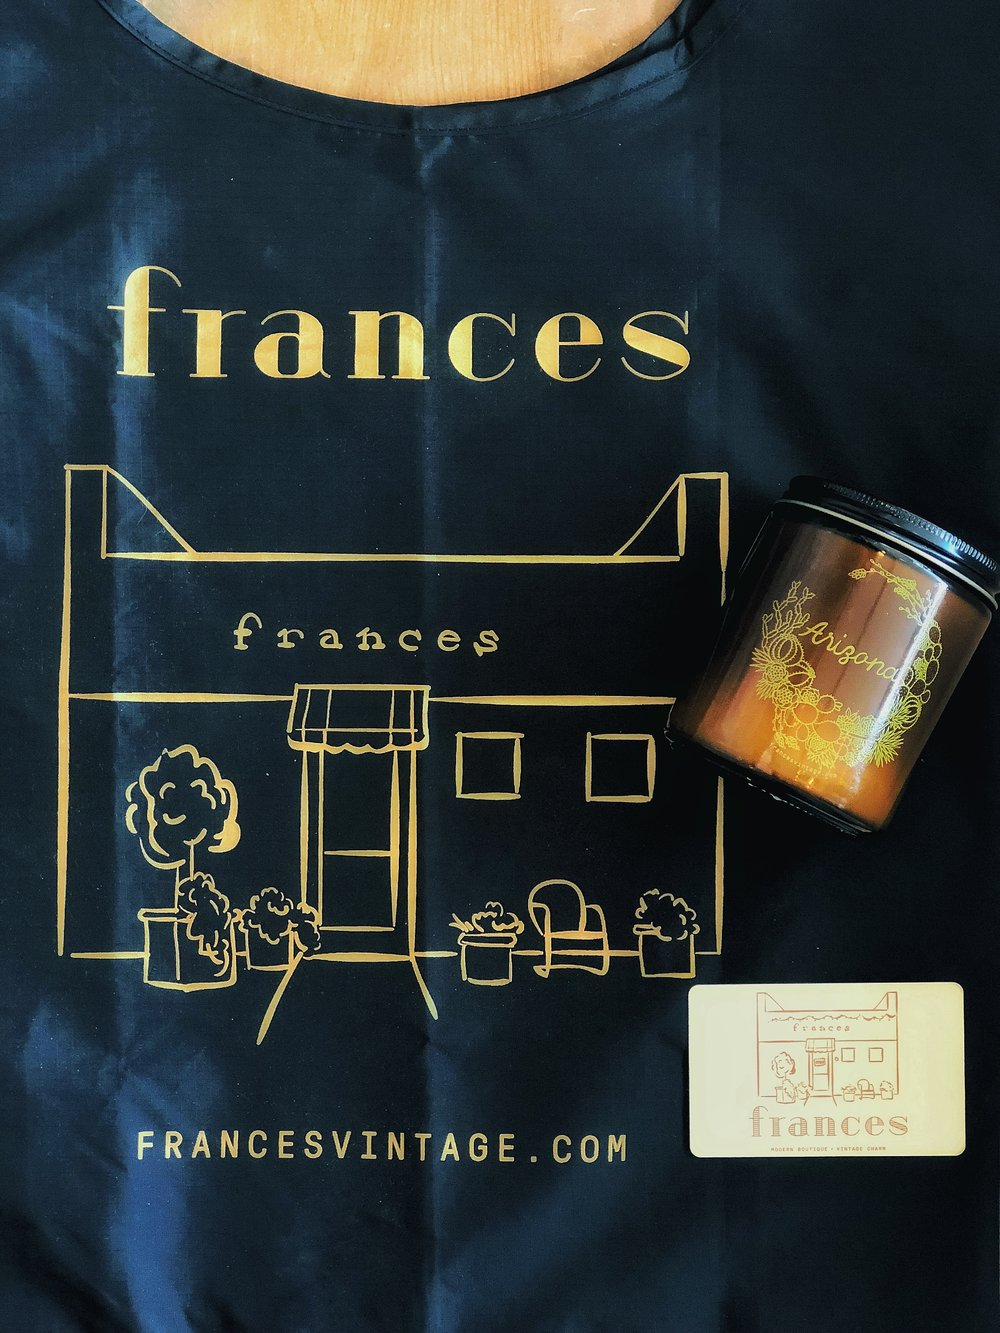 Photo Curtesy of Frances Vintage. Frances will be giving away a tote, candle and $50 gift card. Enter for your chance to win!